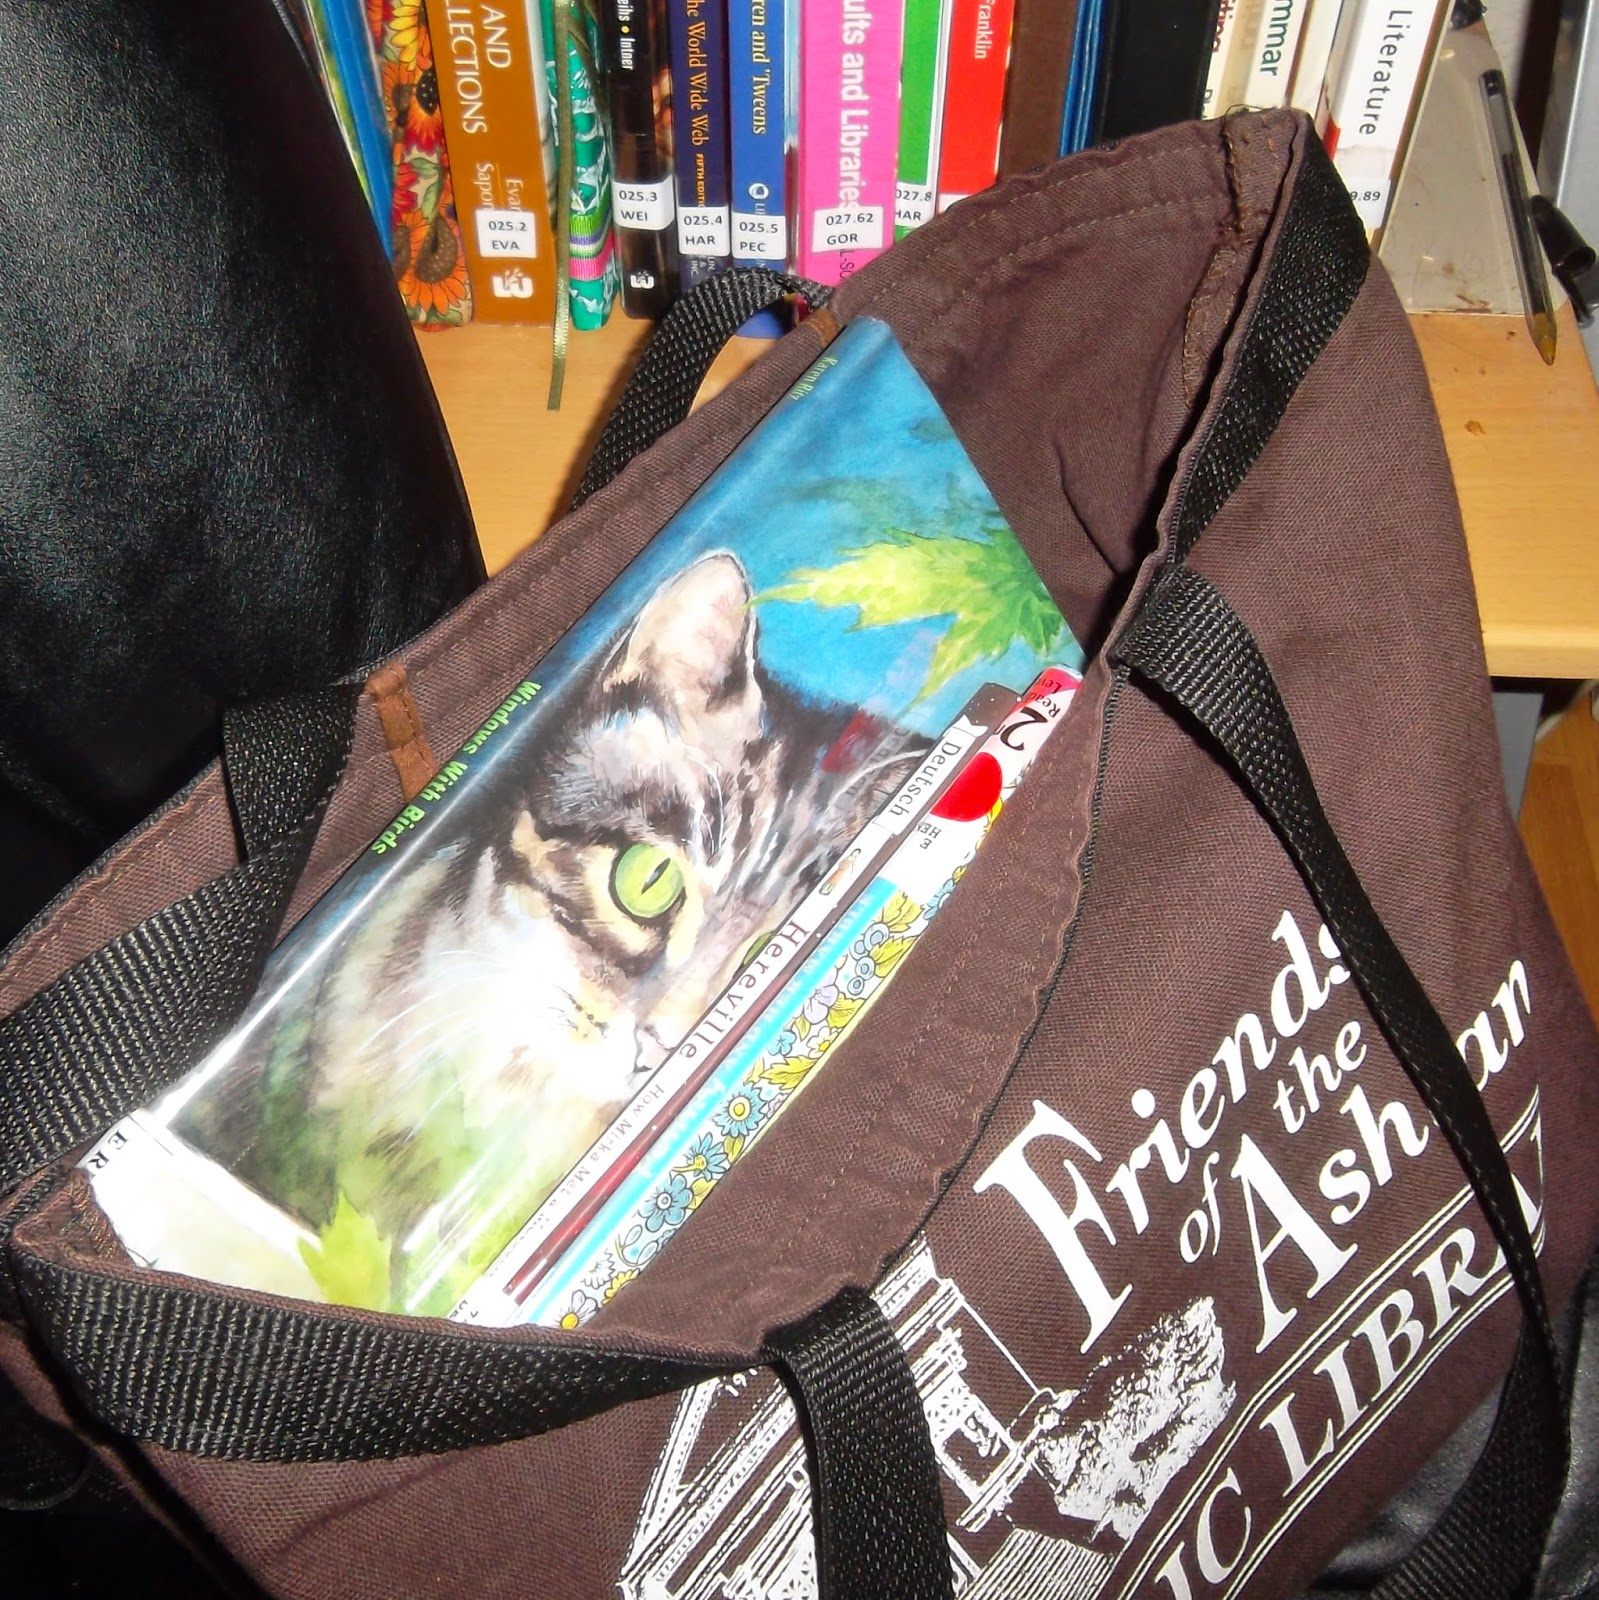 Picture book with painting of a gray tabby cat on the front cover, partially visible with spines of other books inside brown canvas bag. The bag is printed with the logo and name of Friends of the Ashland Public Library.